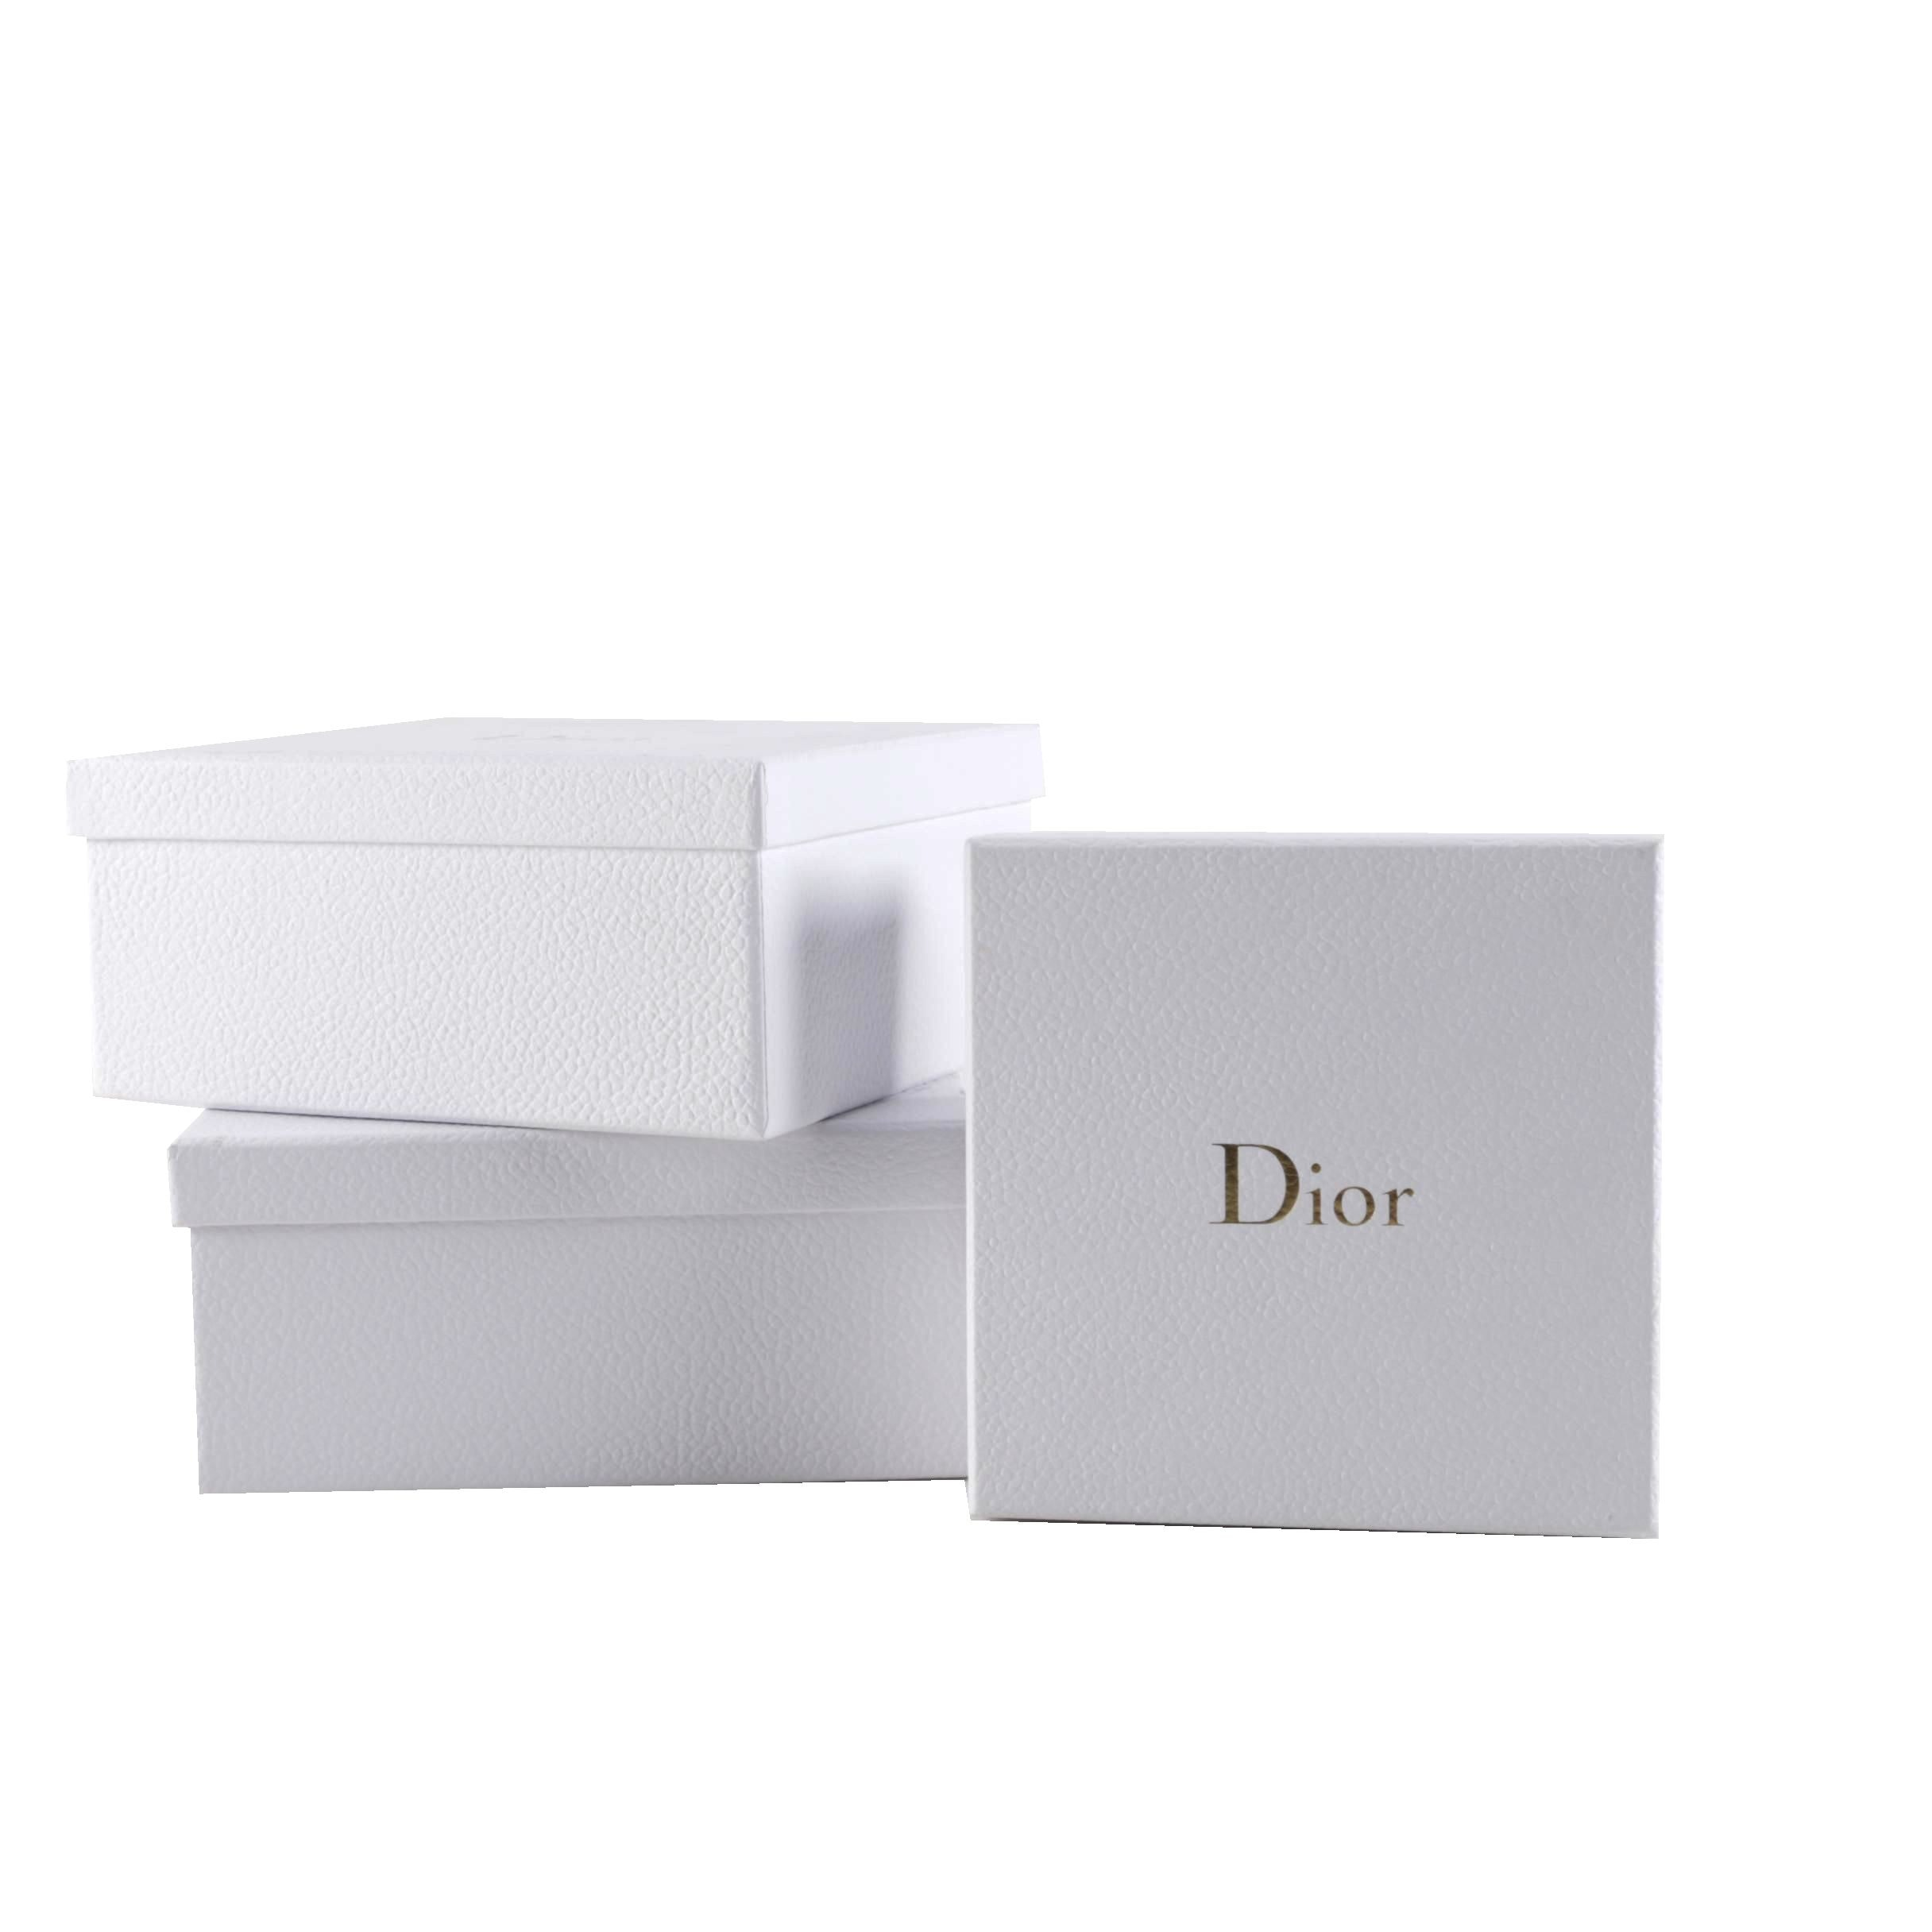 Dior Boxes